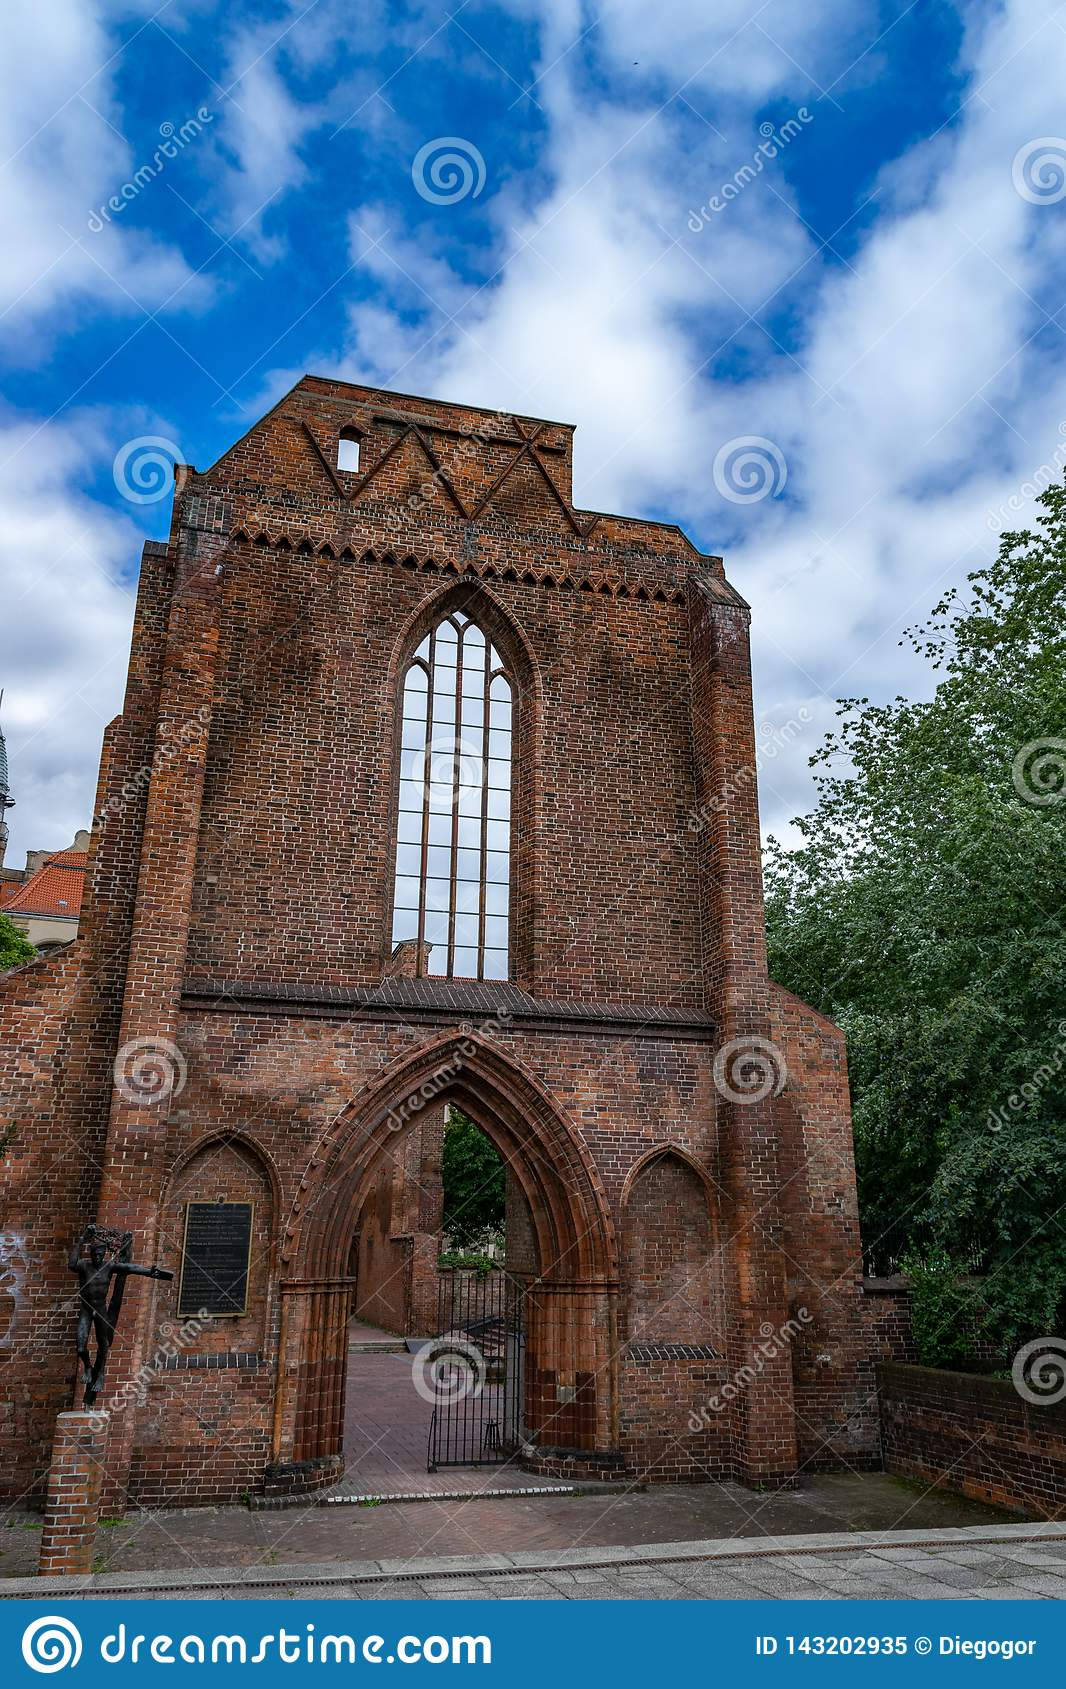 Berlin Gothic Ruins Of The Franciscan Church In Gothic Style In Berlin Stock